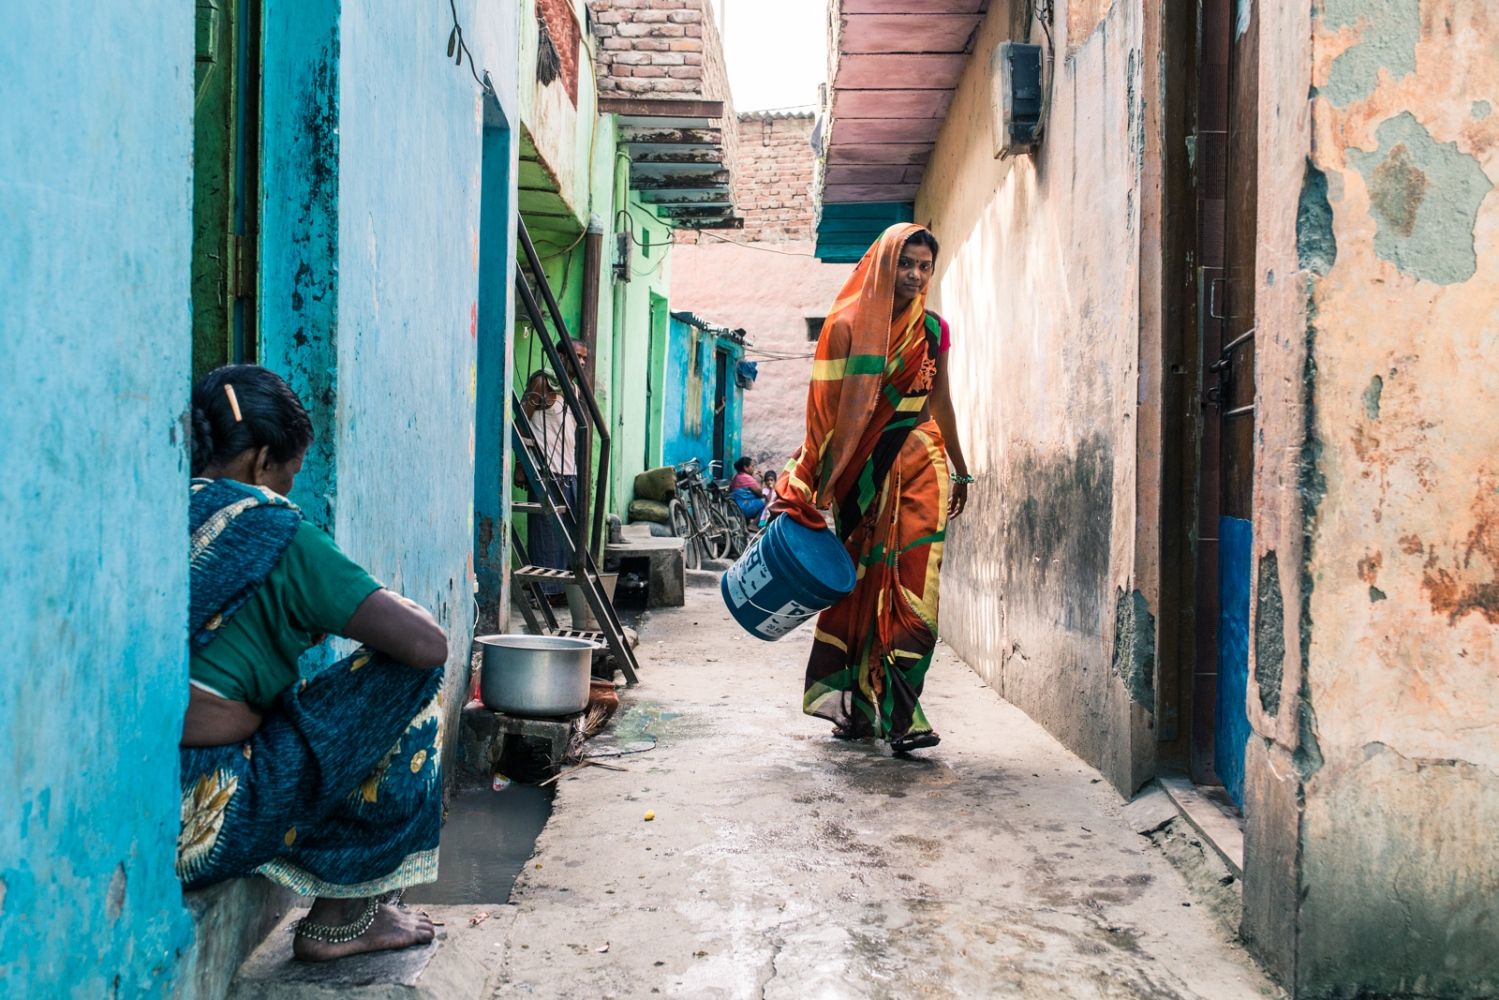 Woman going to collect water in a slum settlement outside New Delhi, India. Climate change is causing rainfall patterns to shift to more extreme variations. Long dry spells in already water starved areas are set to increase putting pressure on cities located in dry locations such as New Delhi.